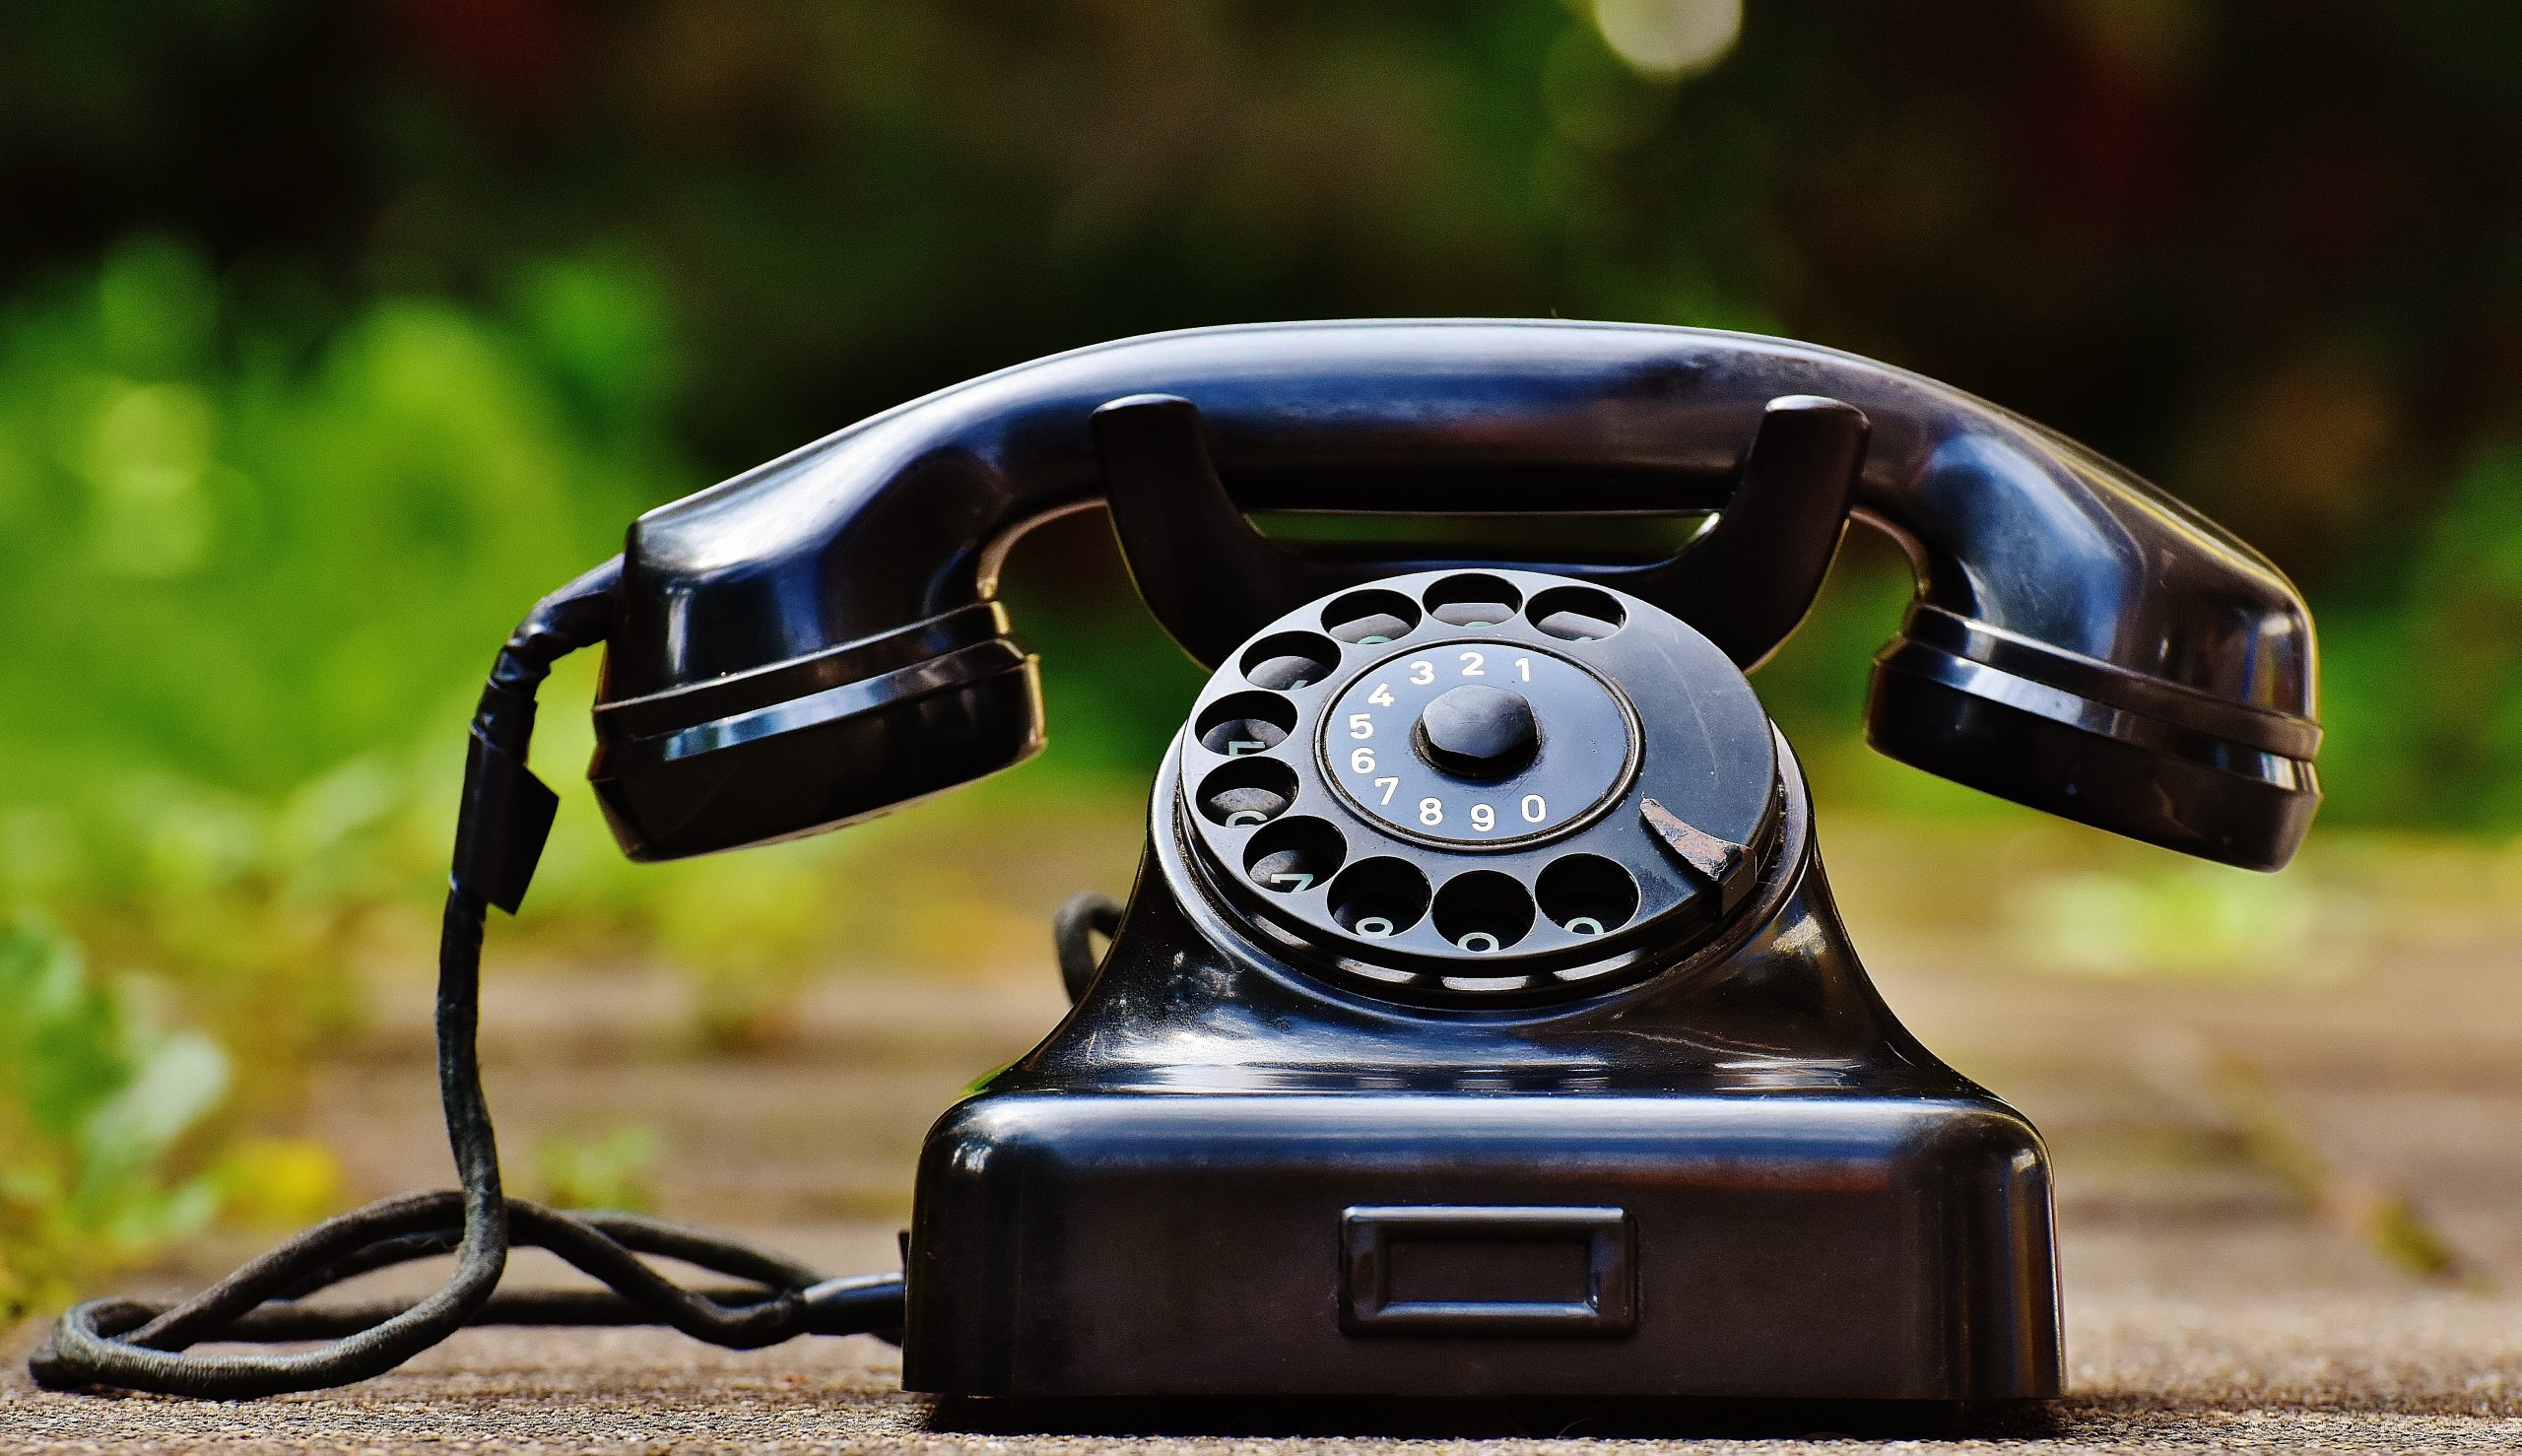 traditional client acquisition for financial advisors involved cold calling